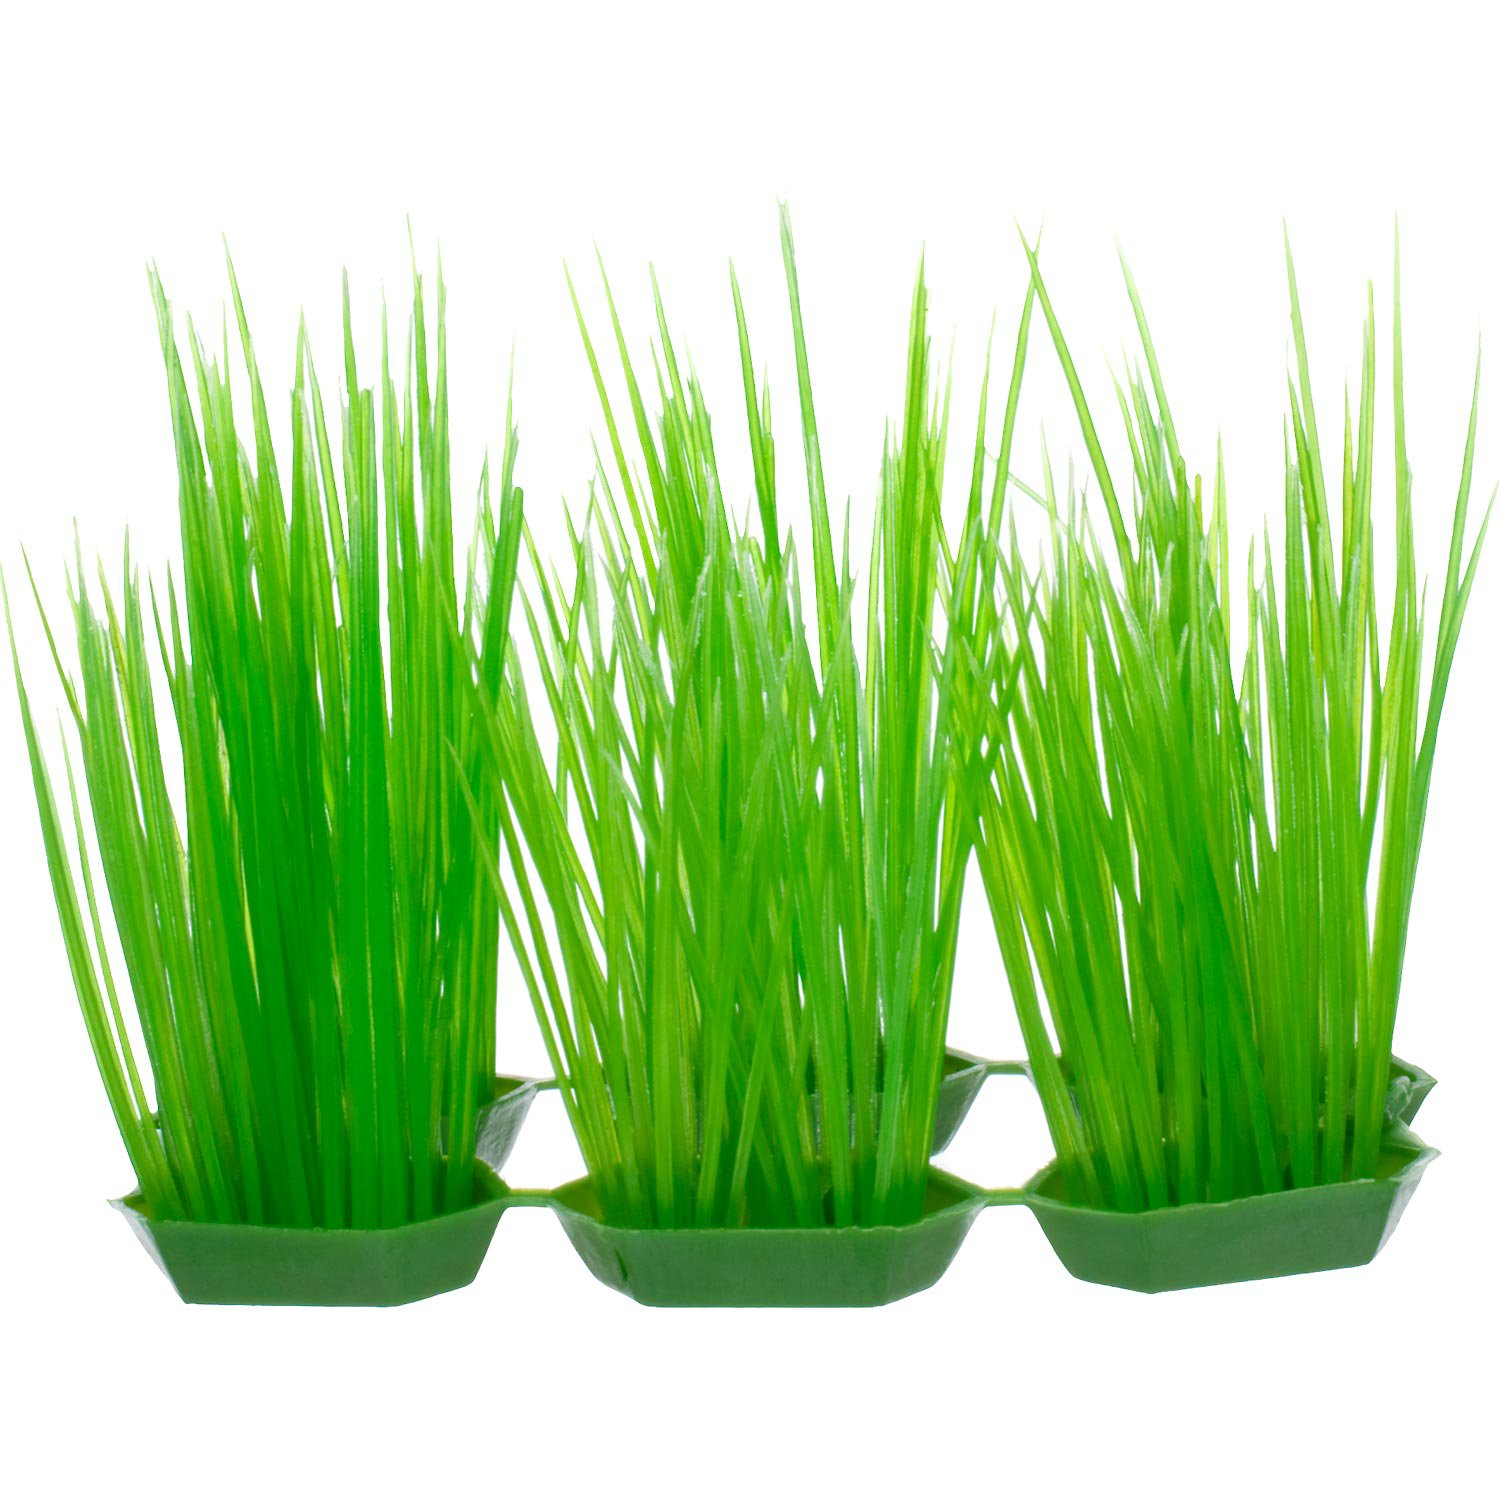 Petco Green Foreground Plastic Aquarium Plants | Petco Store